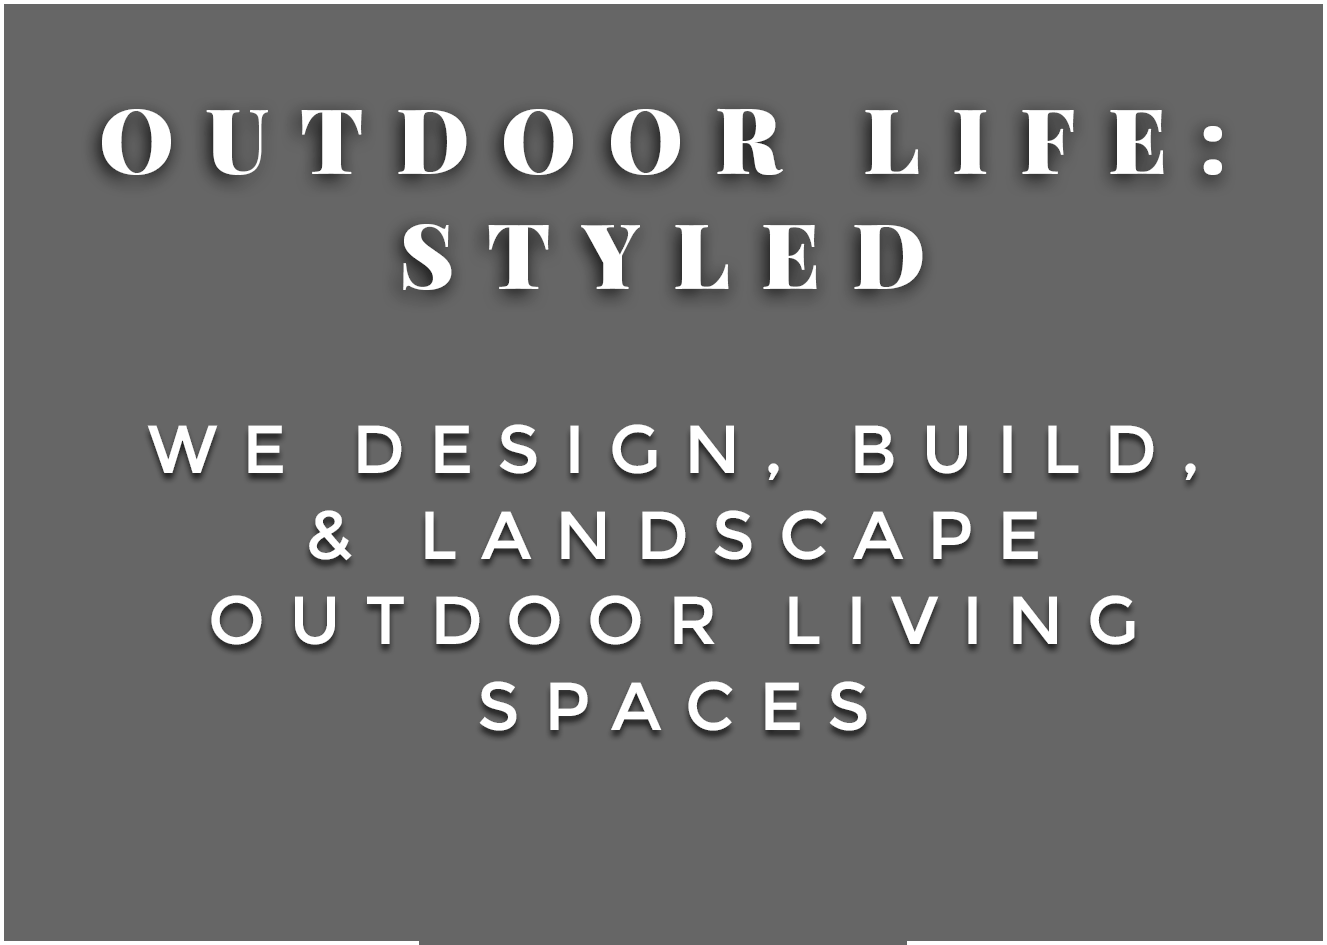 Outdoor life styled - we design, build, and landscape outdoor living spaces